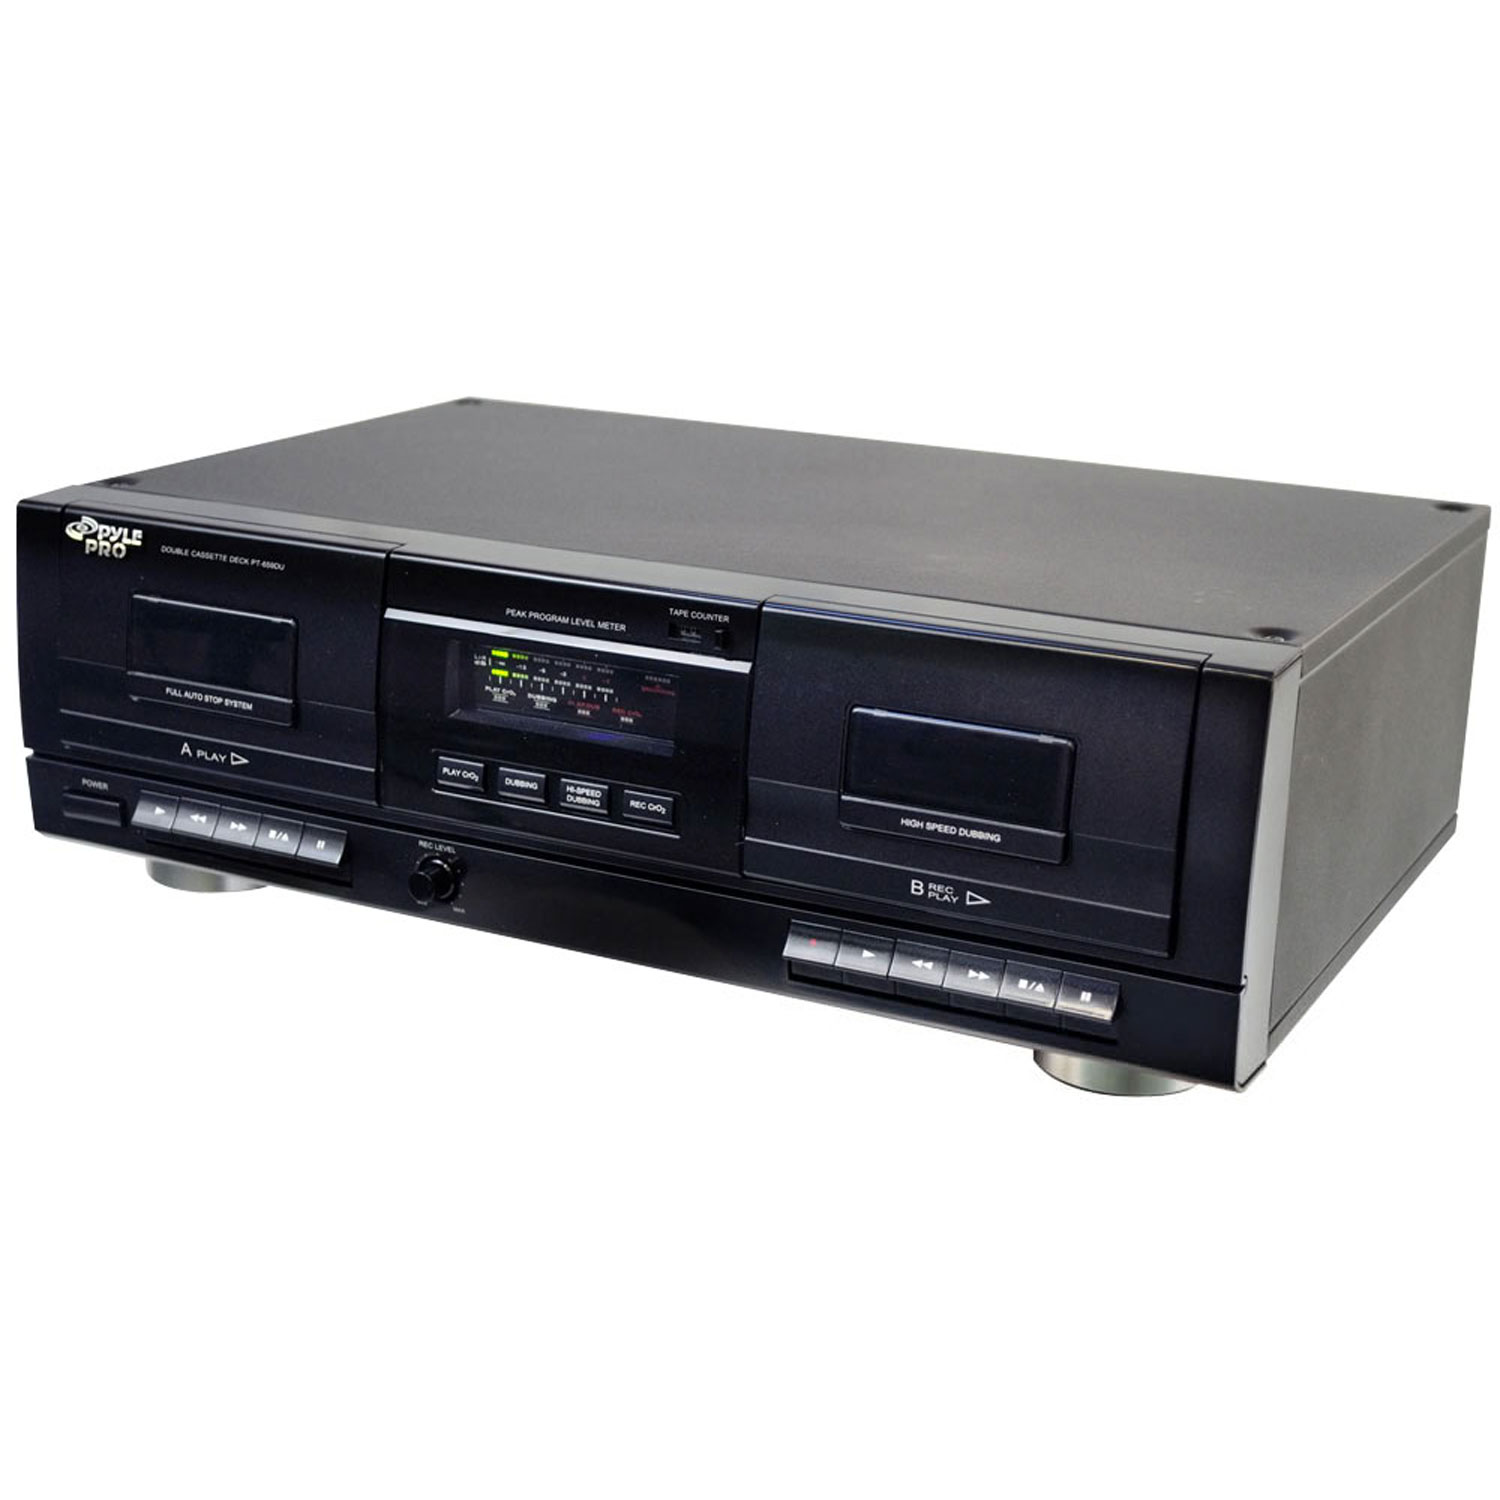 Pyle Dual Stereo Cassette Deck w/Tape USB to MP3 Converter